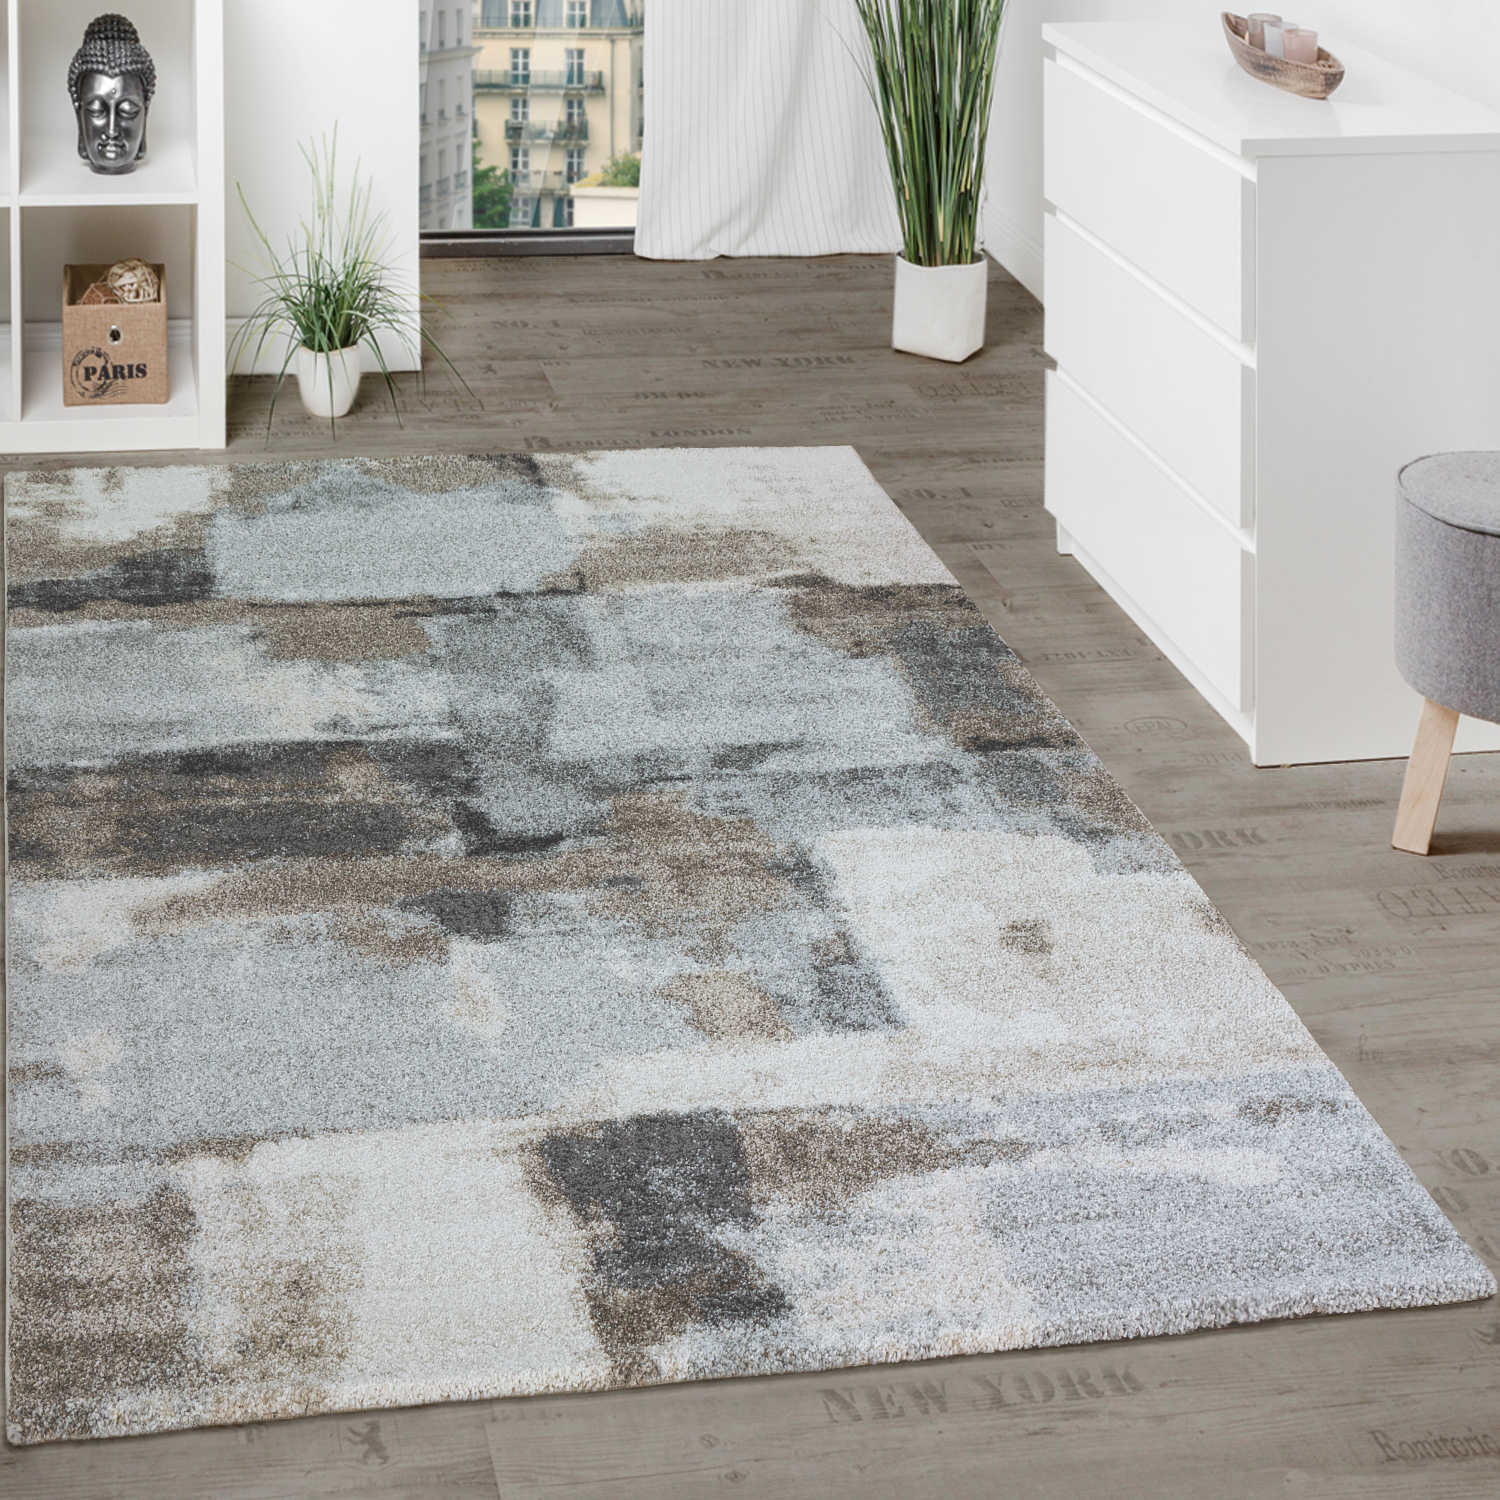 Checked Black Grey Rug: Designer Rug Checked Grey